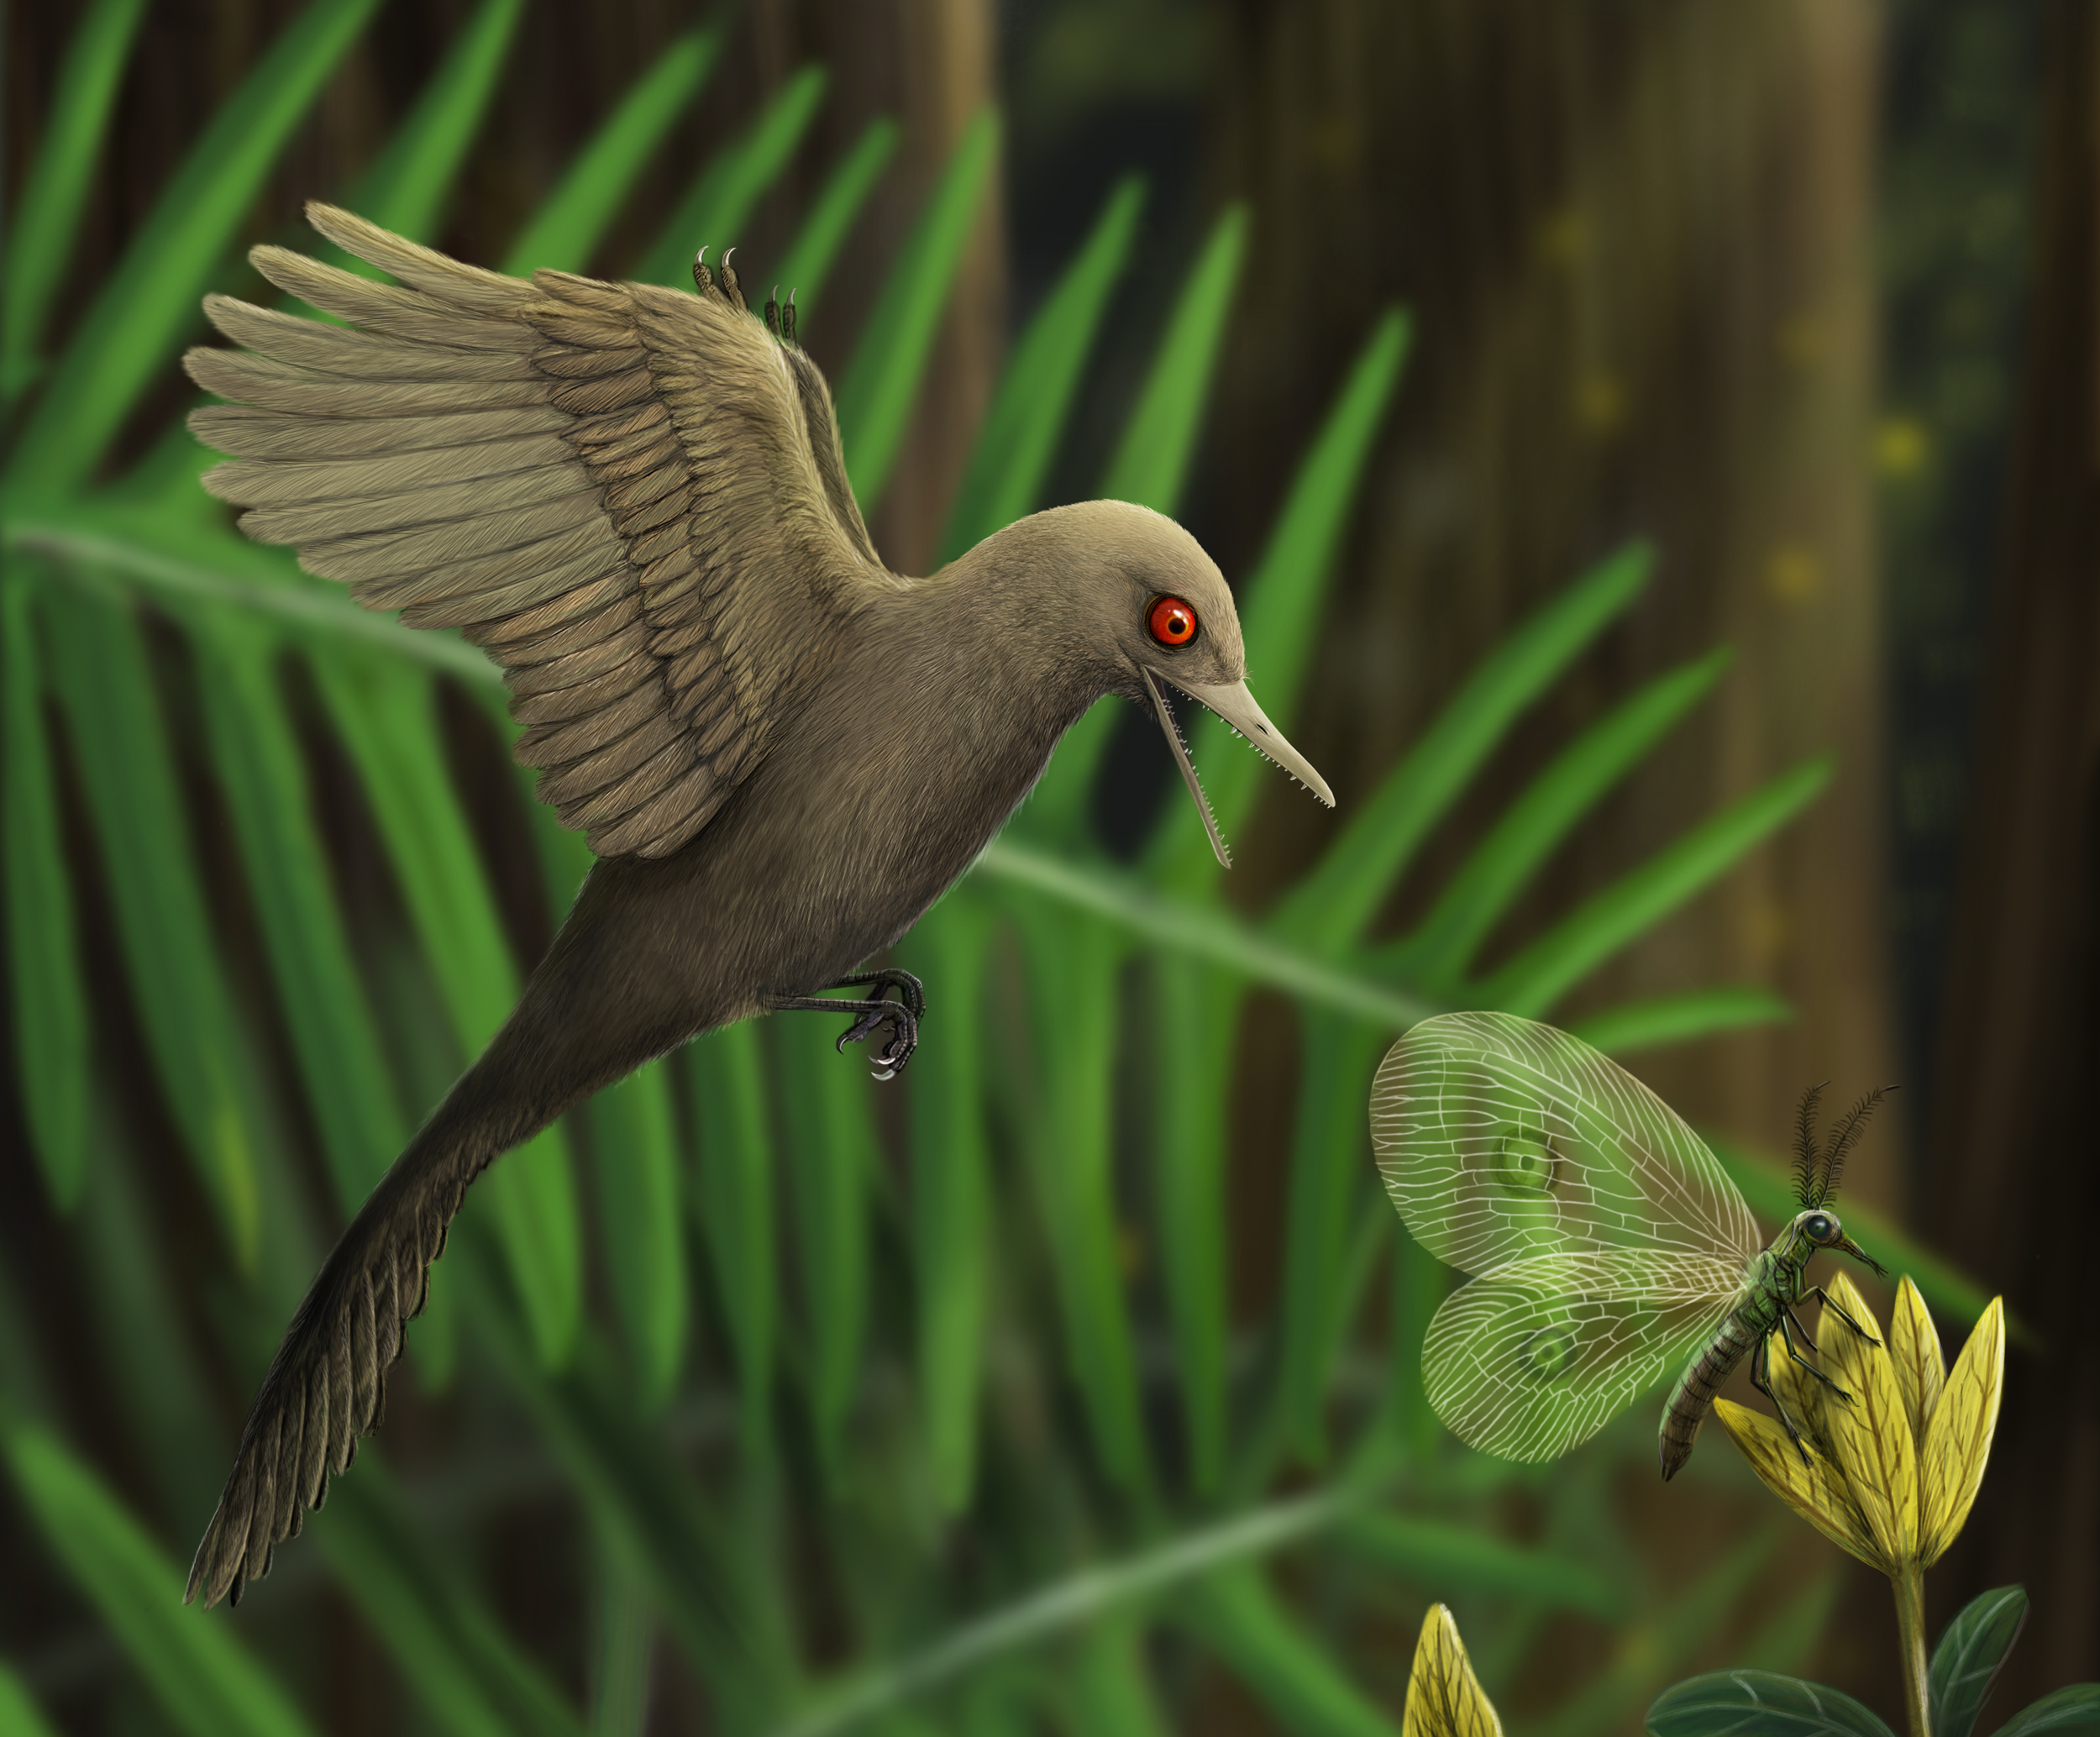 The Smallest Dinosaur Ever Found Was A Weird Primitive Bird Researchers Say